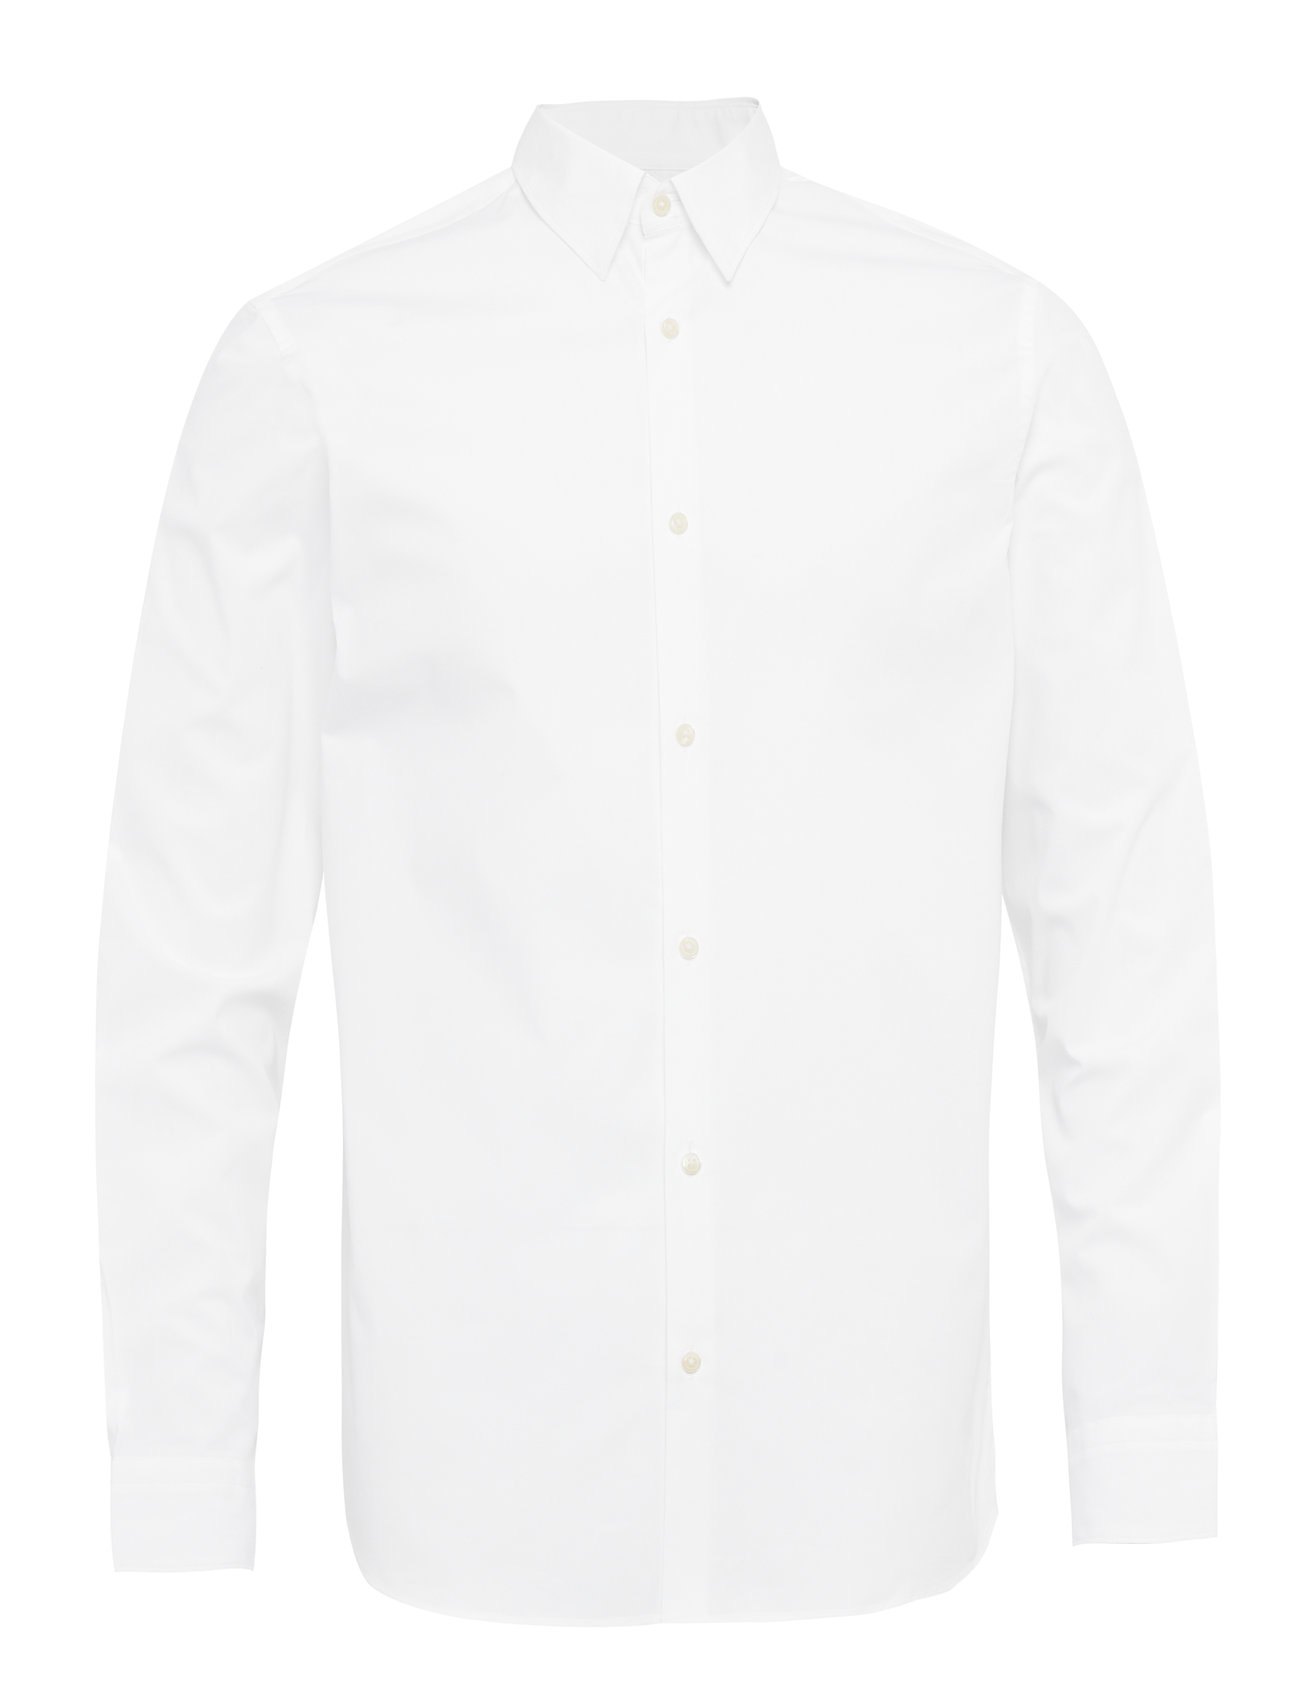 Selected Homme SLHSLIMMICHIGAN SHIRT LS B NOOS - BRIGHT WHITE